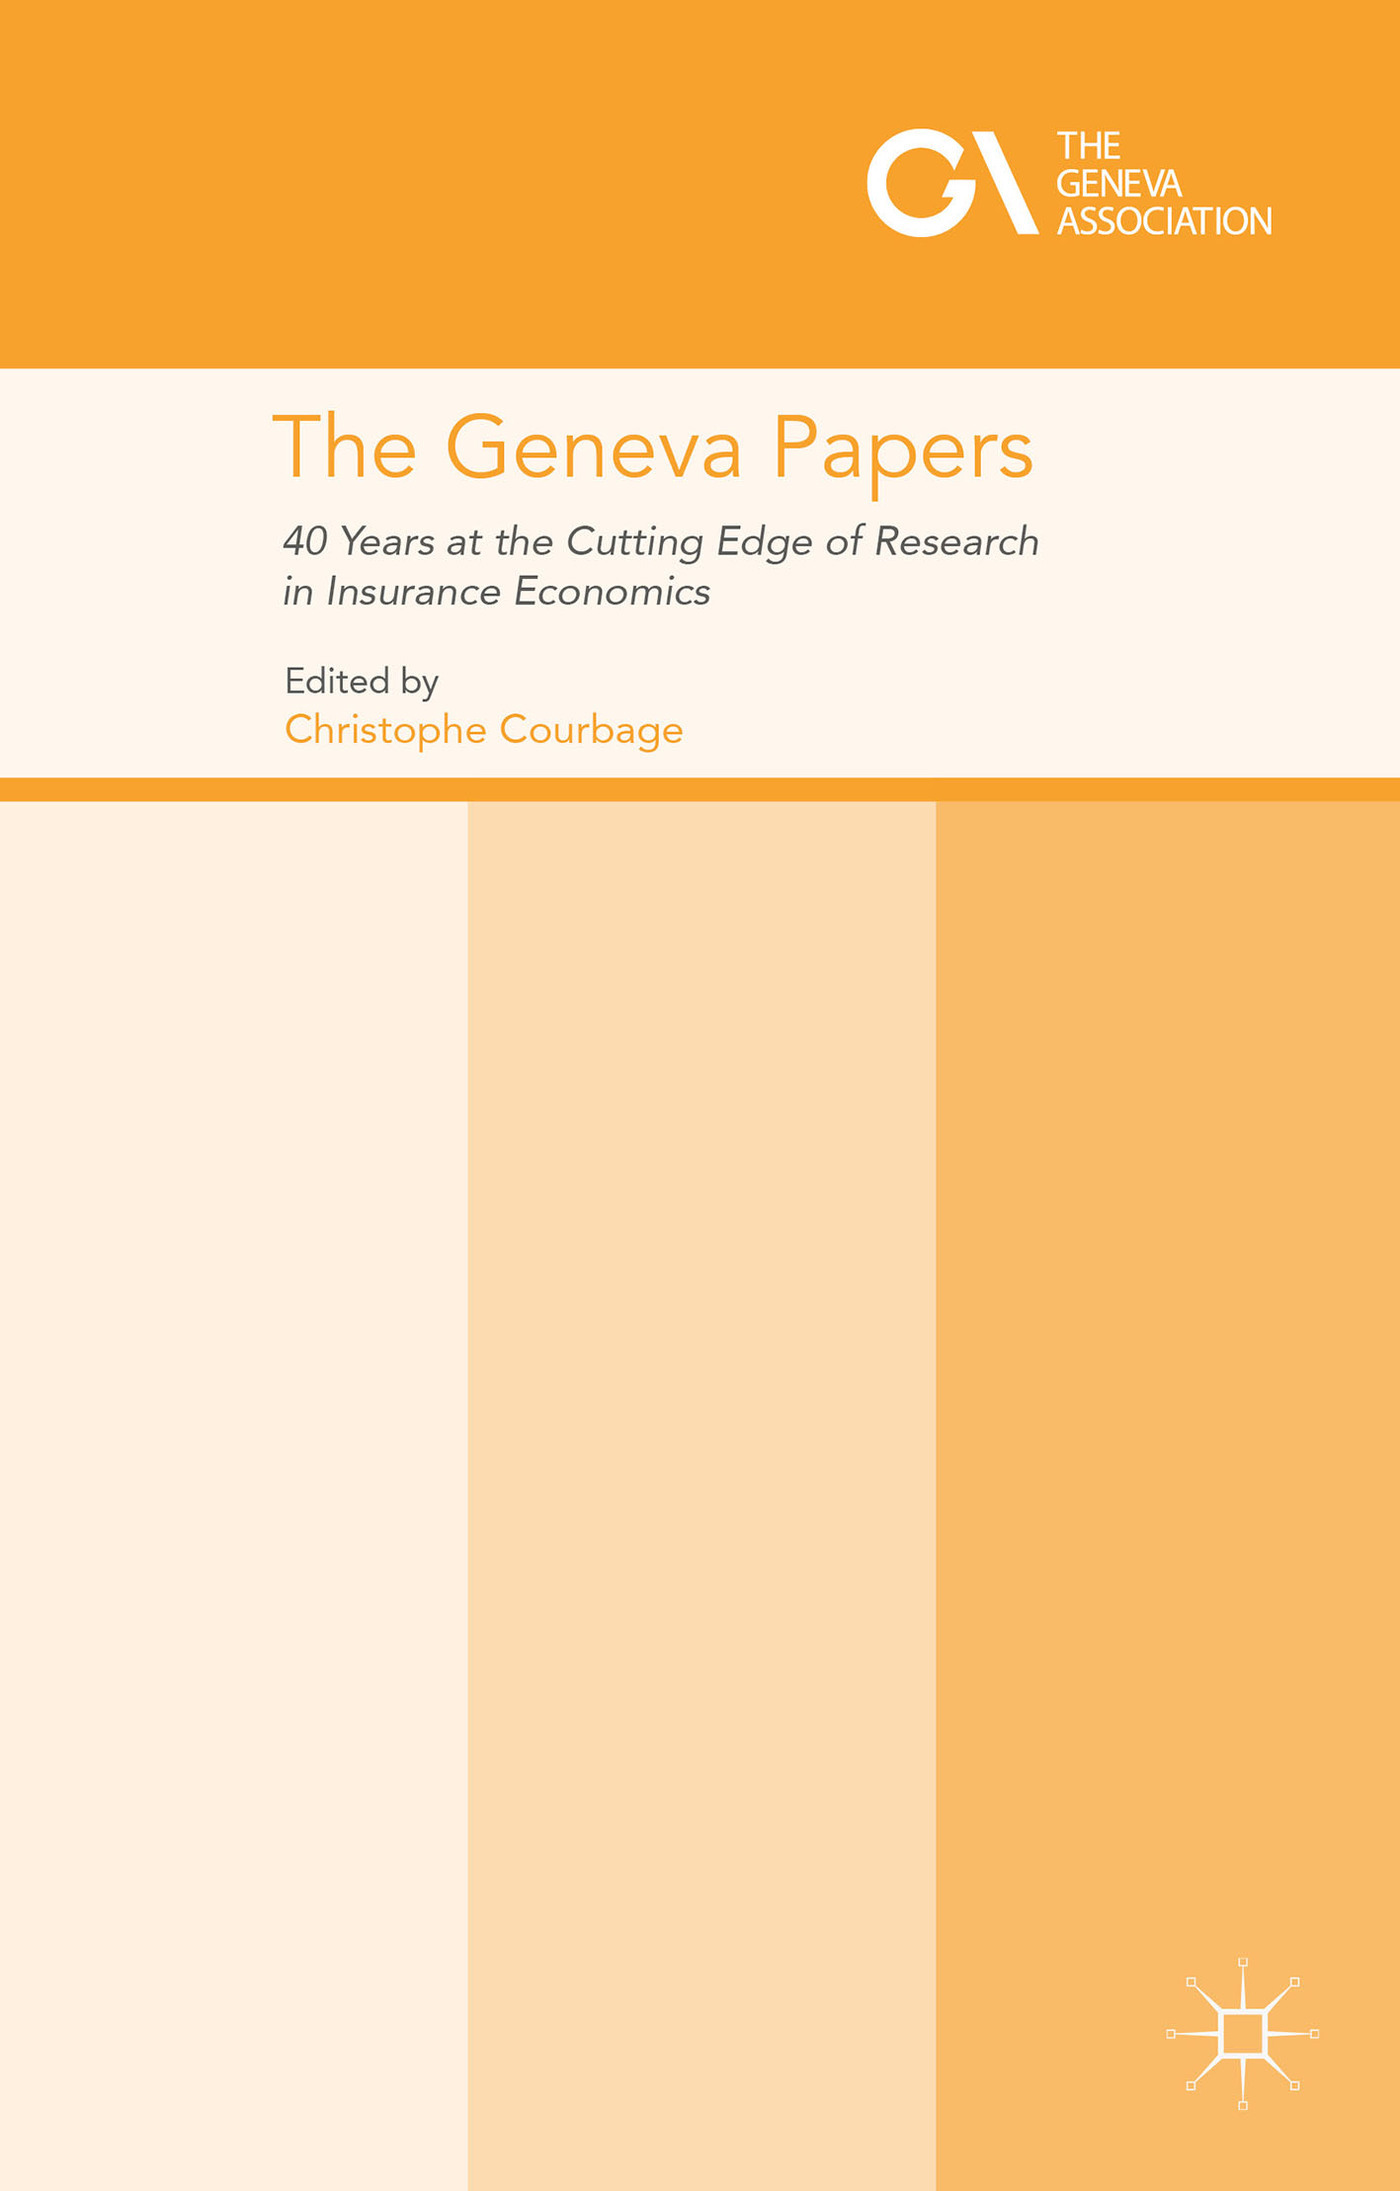 The Geneva Papers: 40 Years at the Cutting Edge of Research in Insurance Economics  by  Christophe Courbage